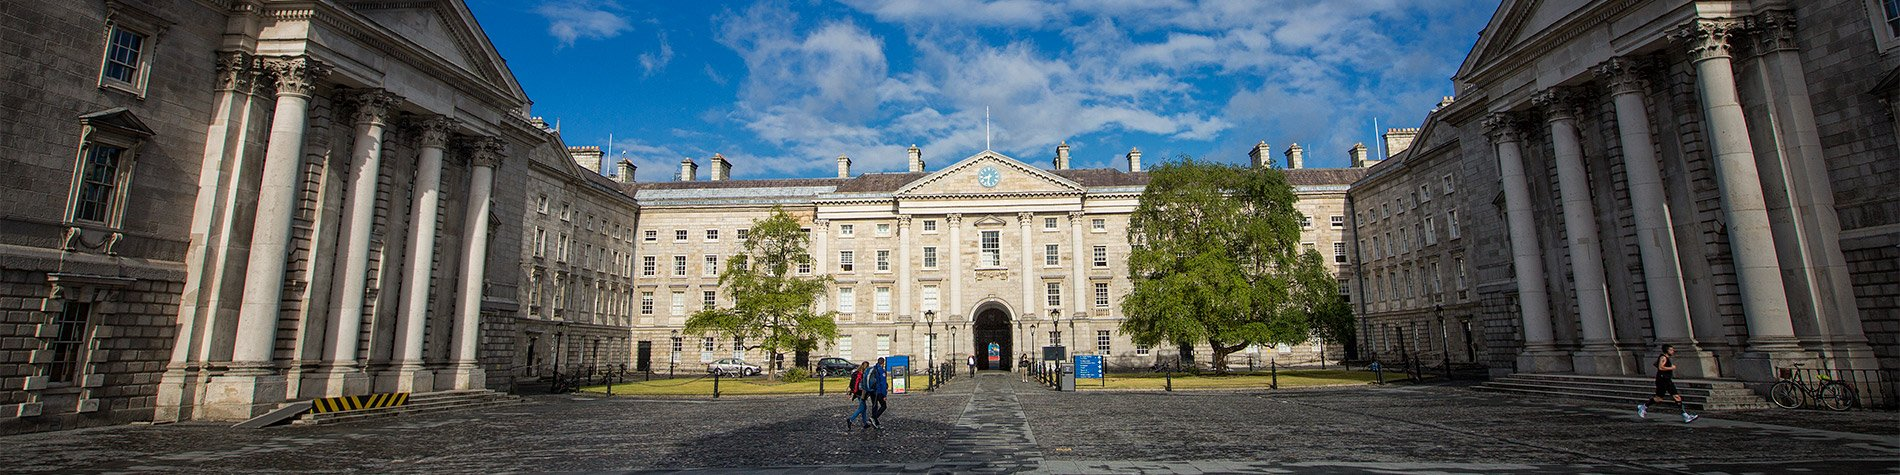 Trinity College Campus on a walking tour